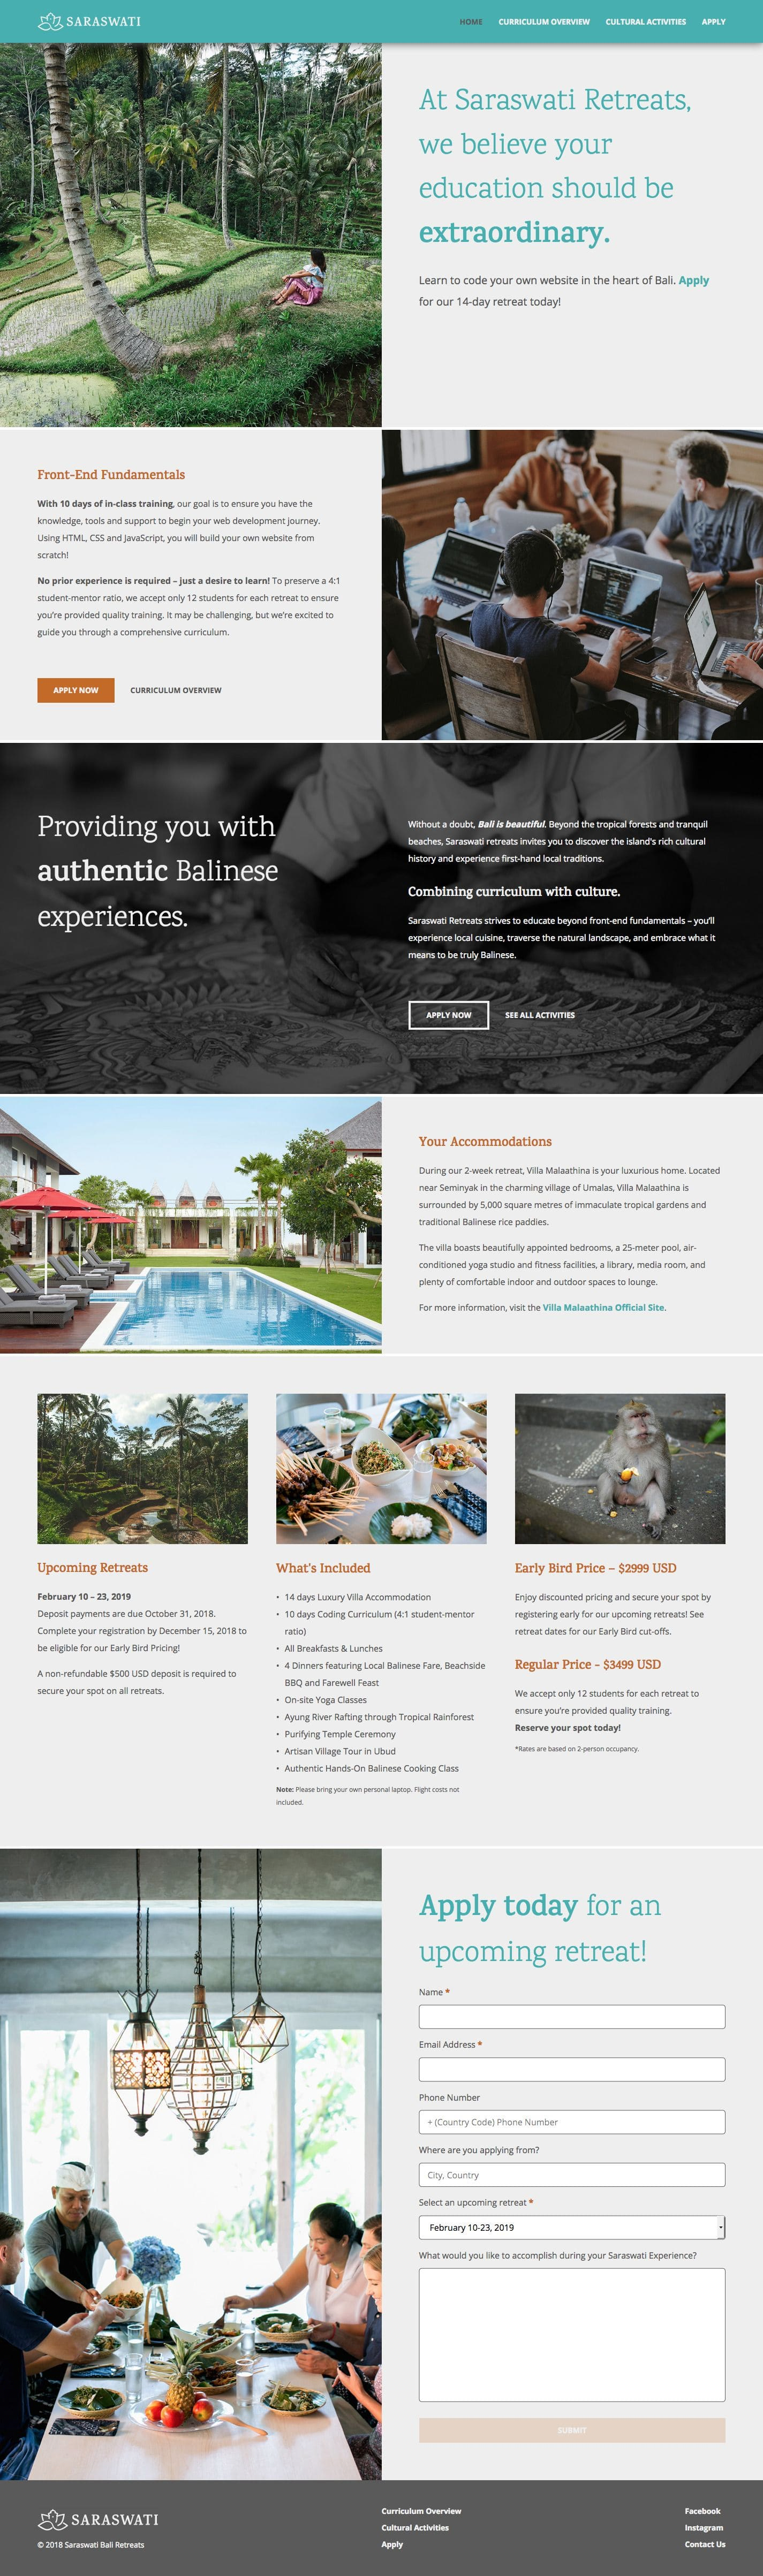 Screen capture of the Saraswati Bali Retreats homepage